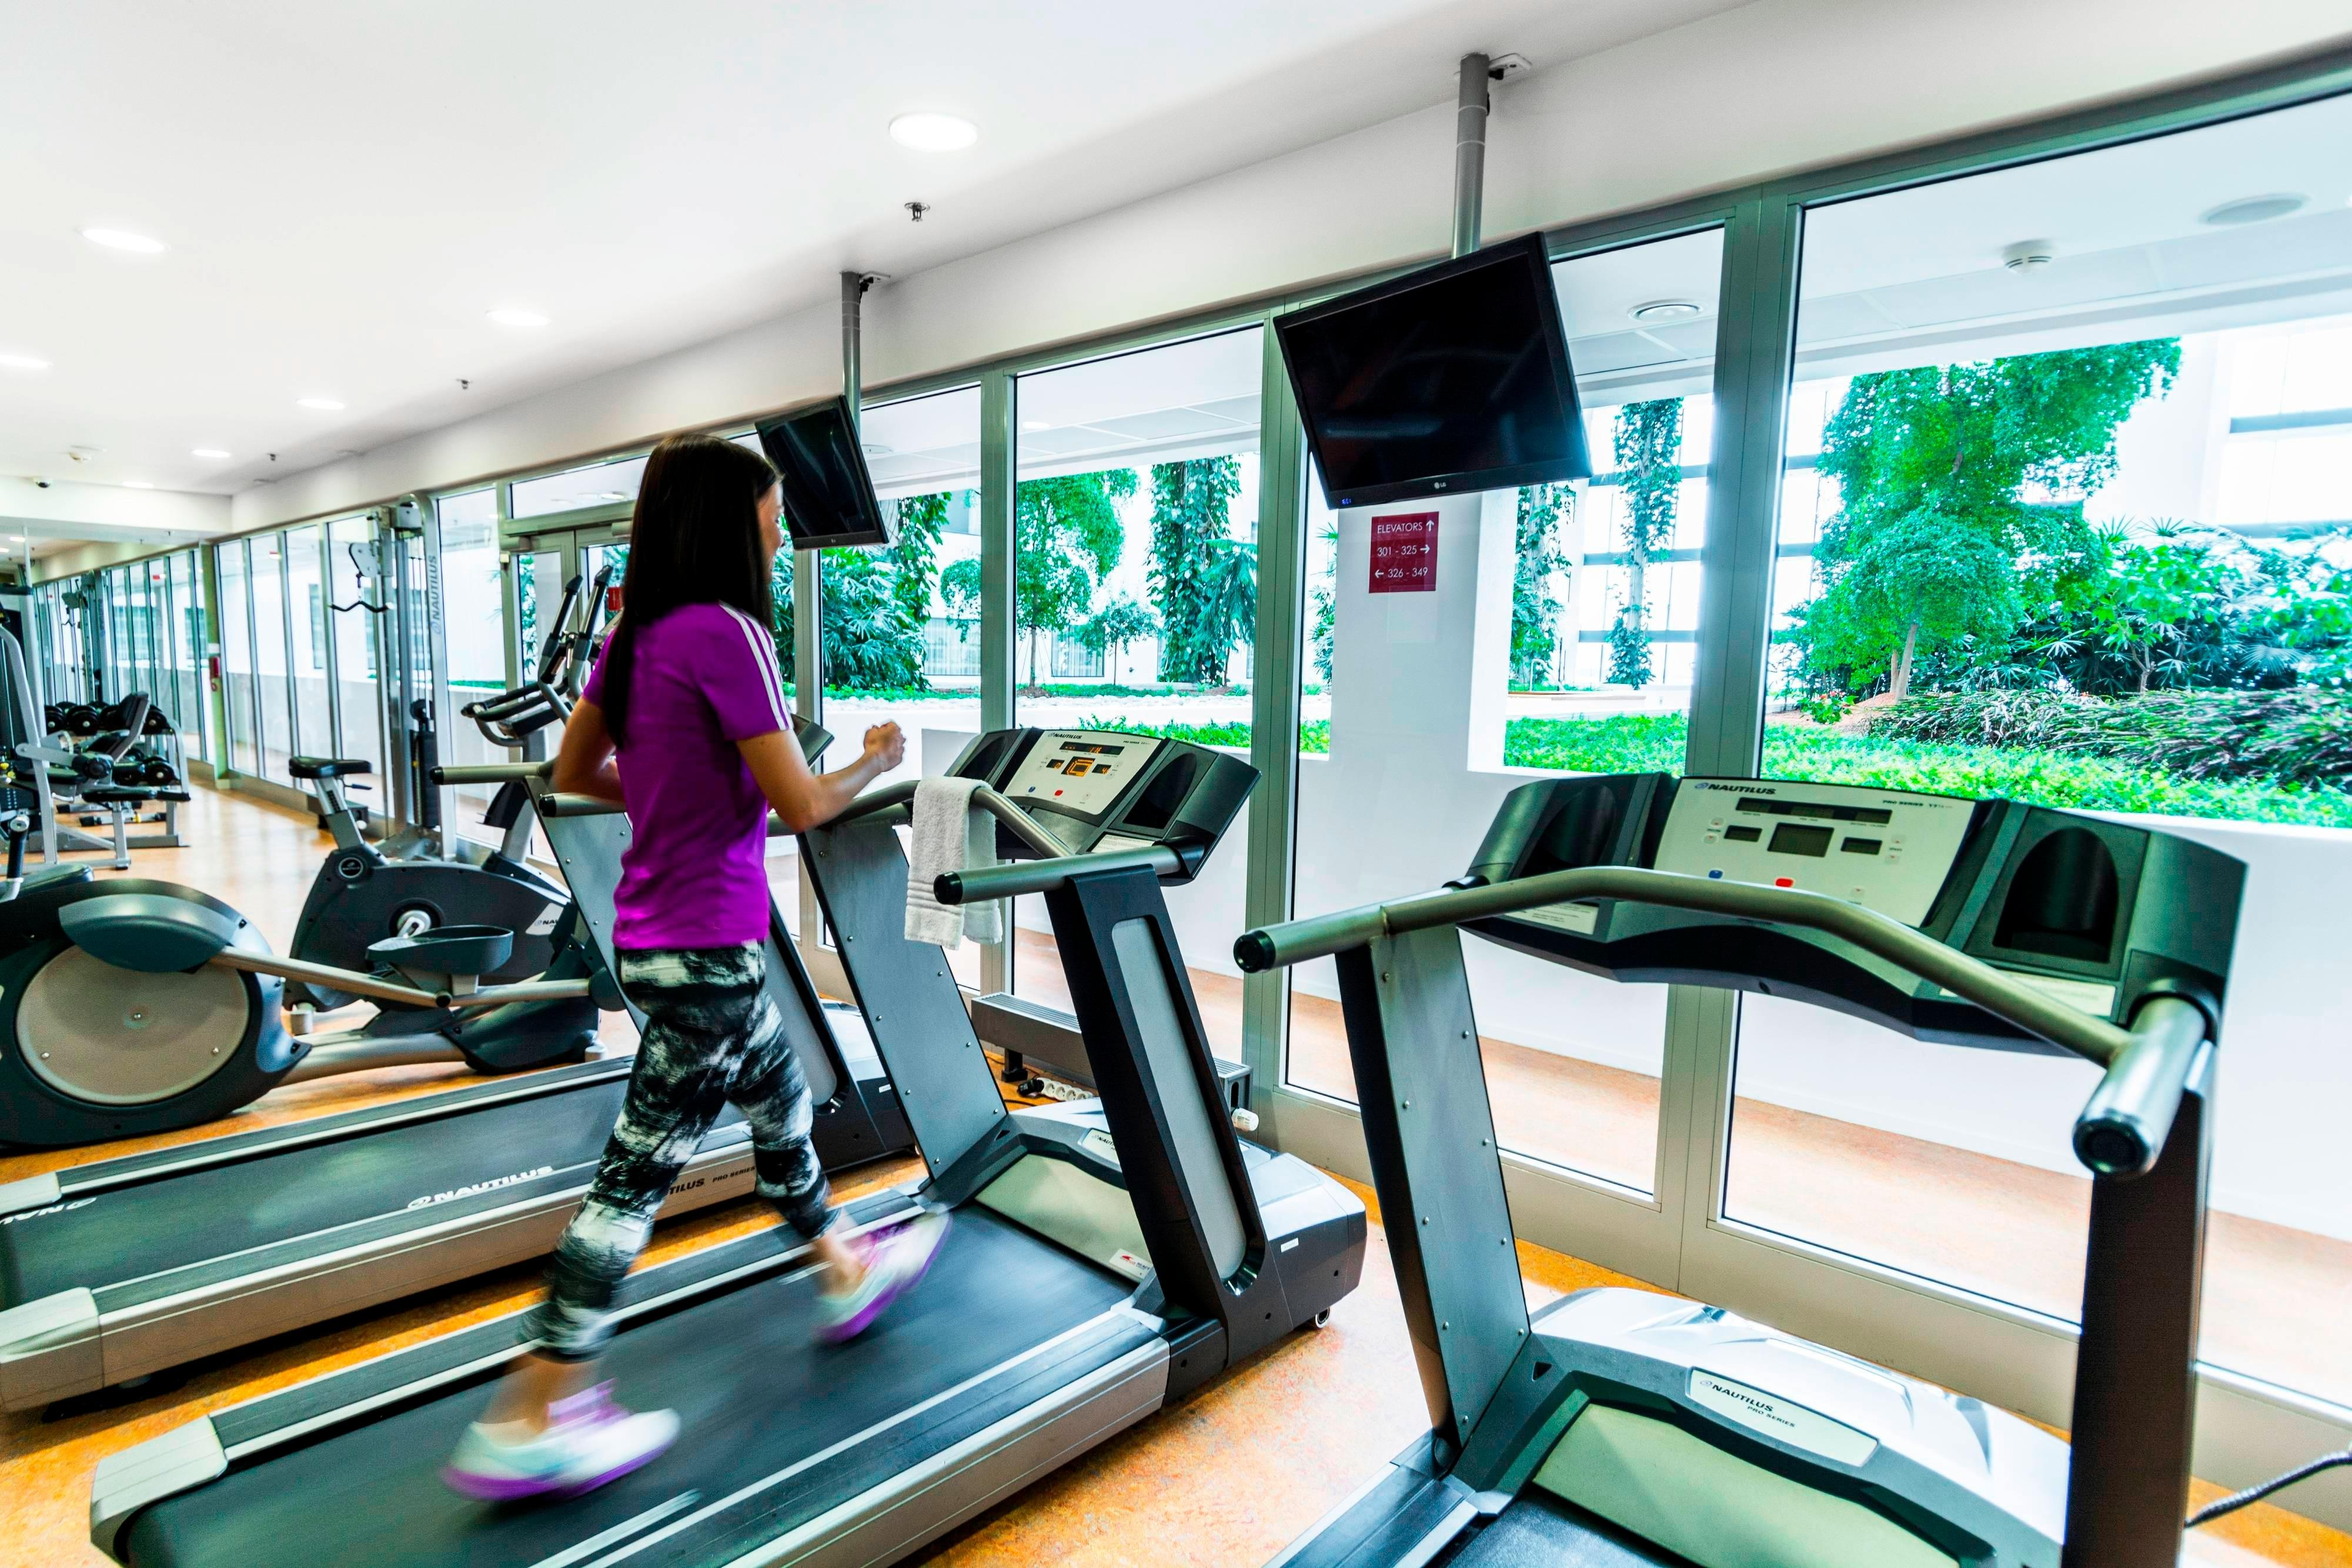 Prague hotel fitness center